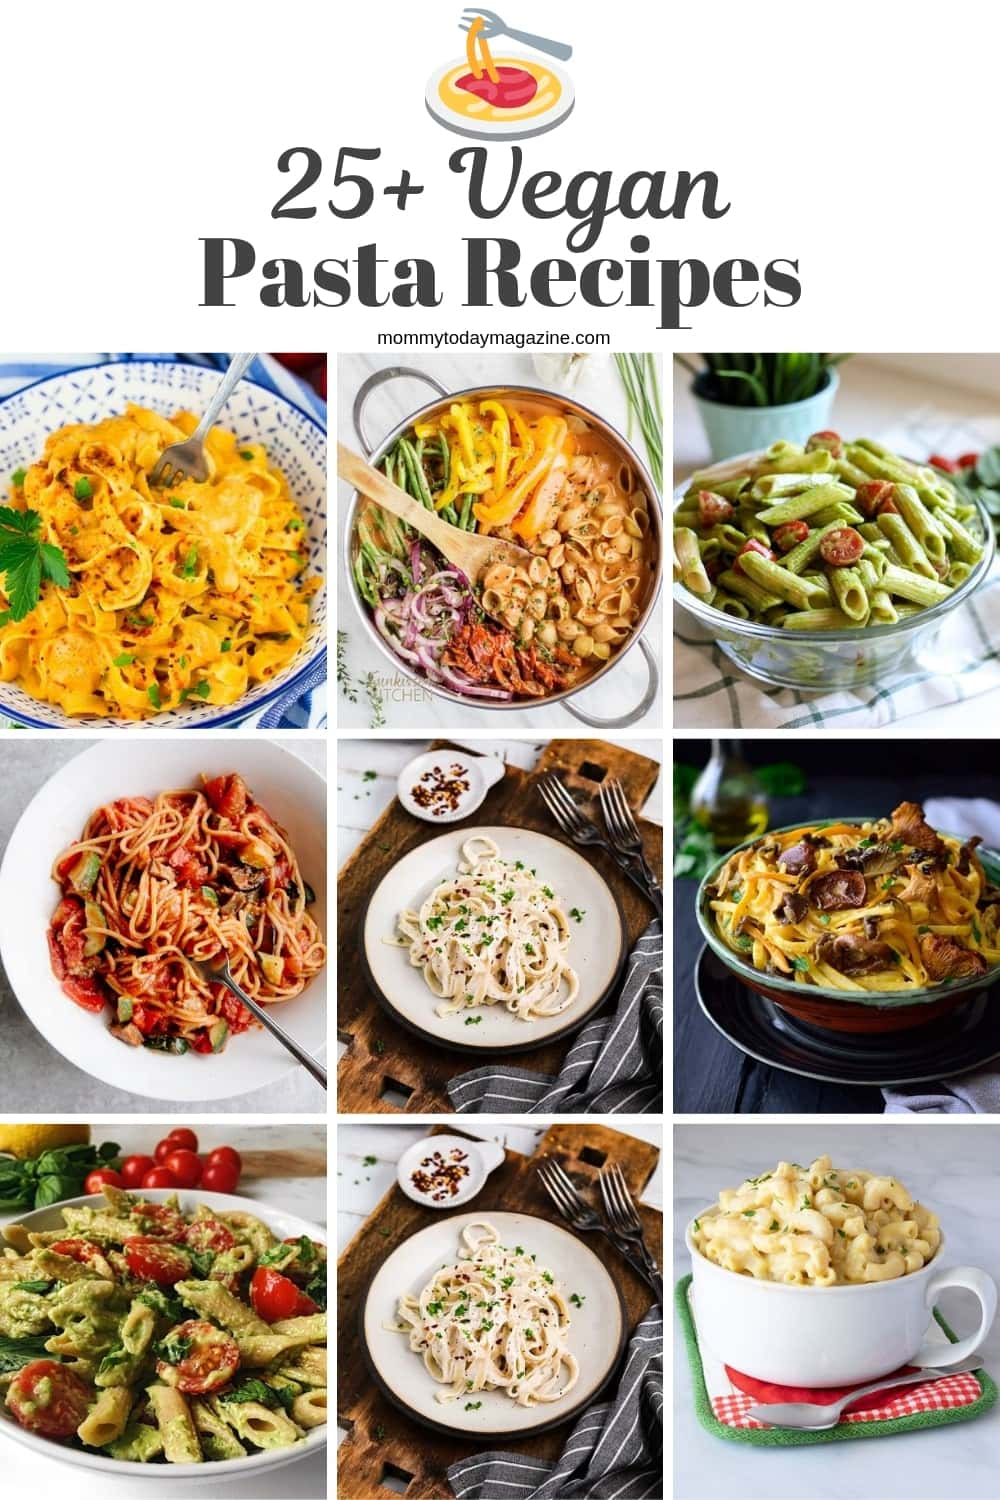 Top 25 Best Vegan Pasta Recipes - Meat and Dairy Free Pasta Recipes